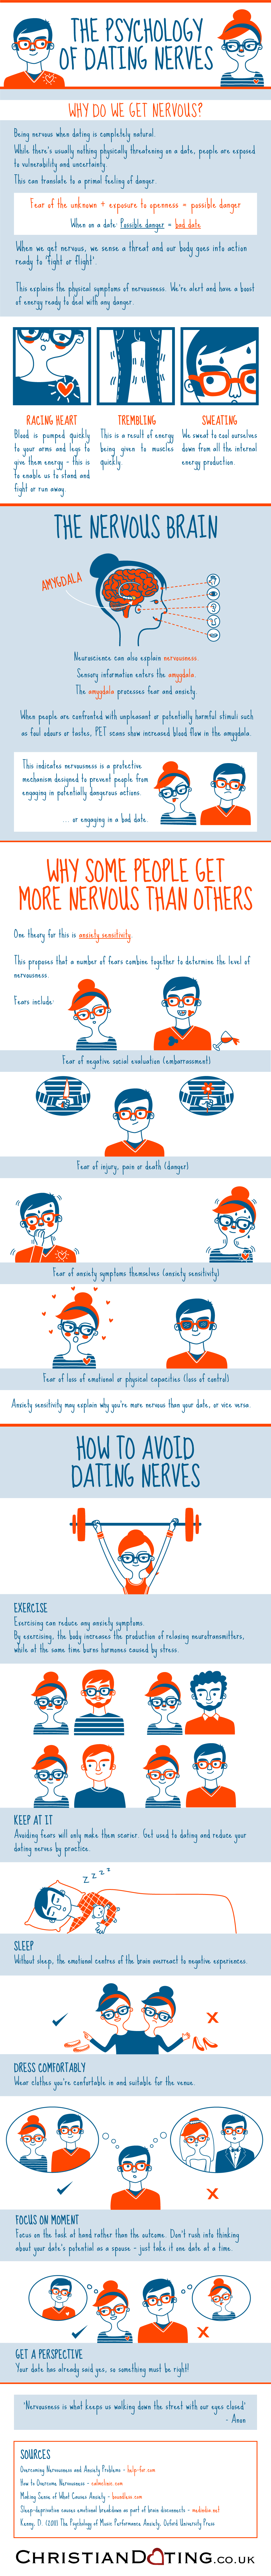 The_Psychology_of_Dating_Nerves